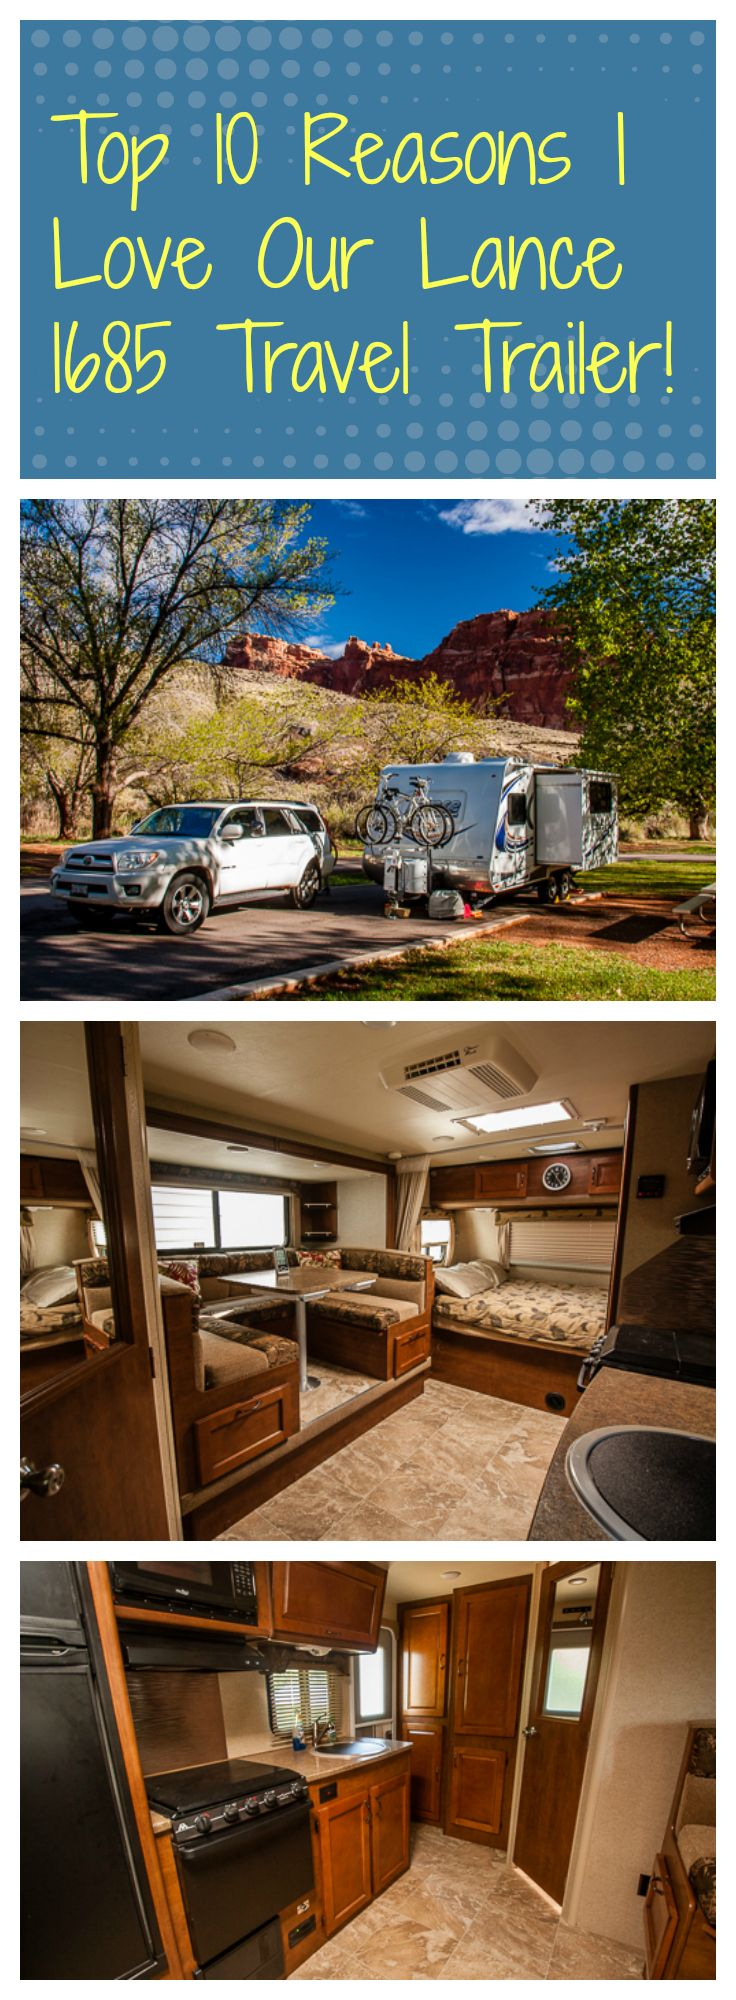 Top 10 reasons we love our Lance 1685 Travel Trailer!